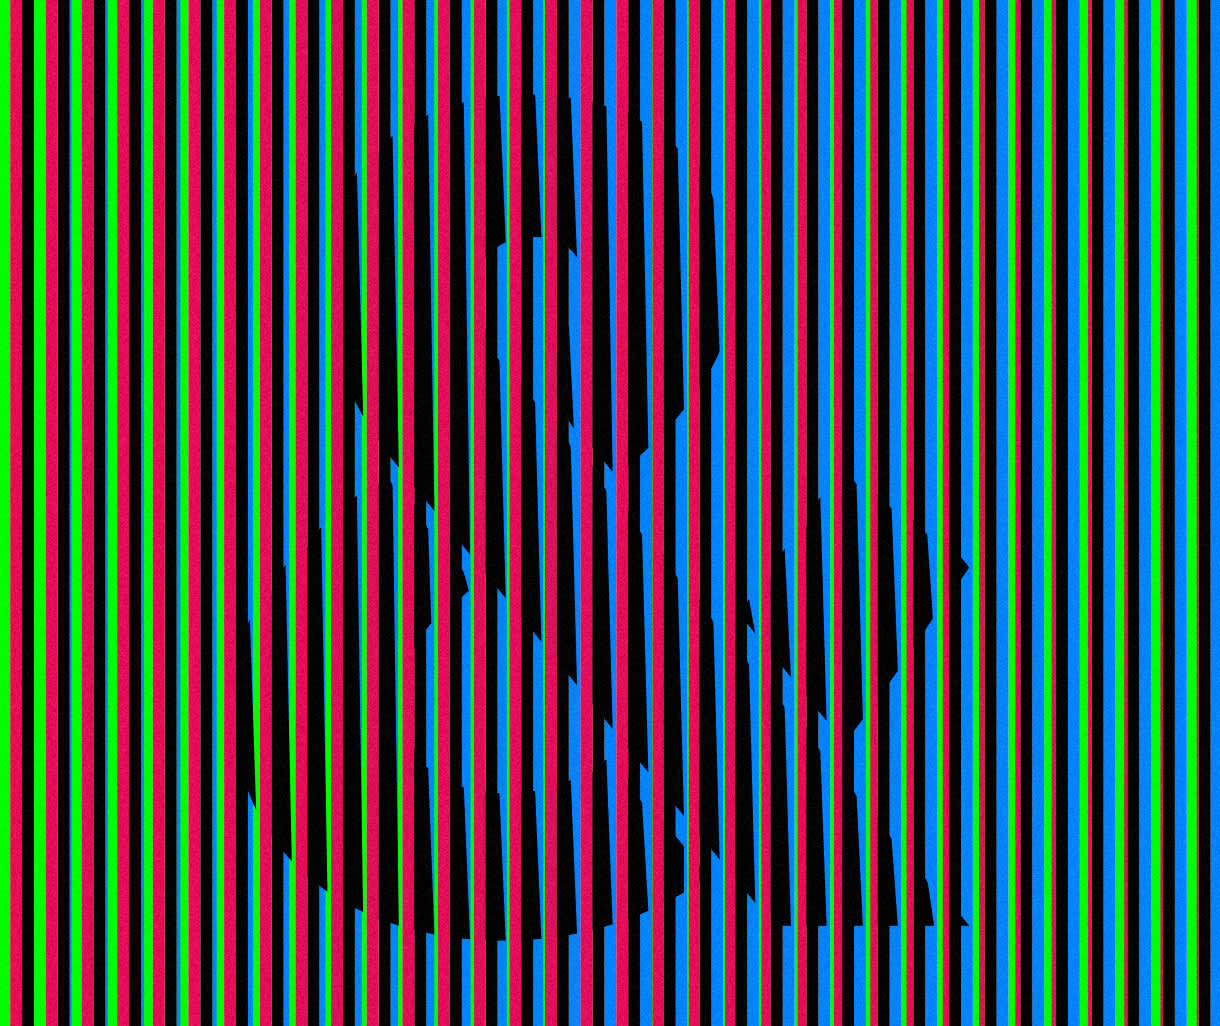 Exploratory - Phisicromie and Op Art